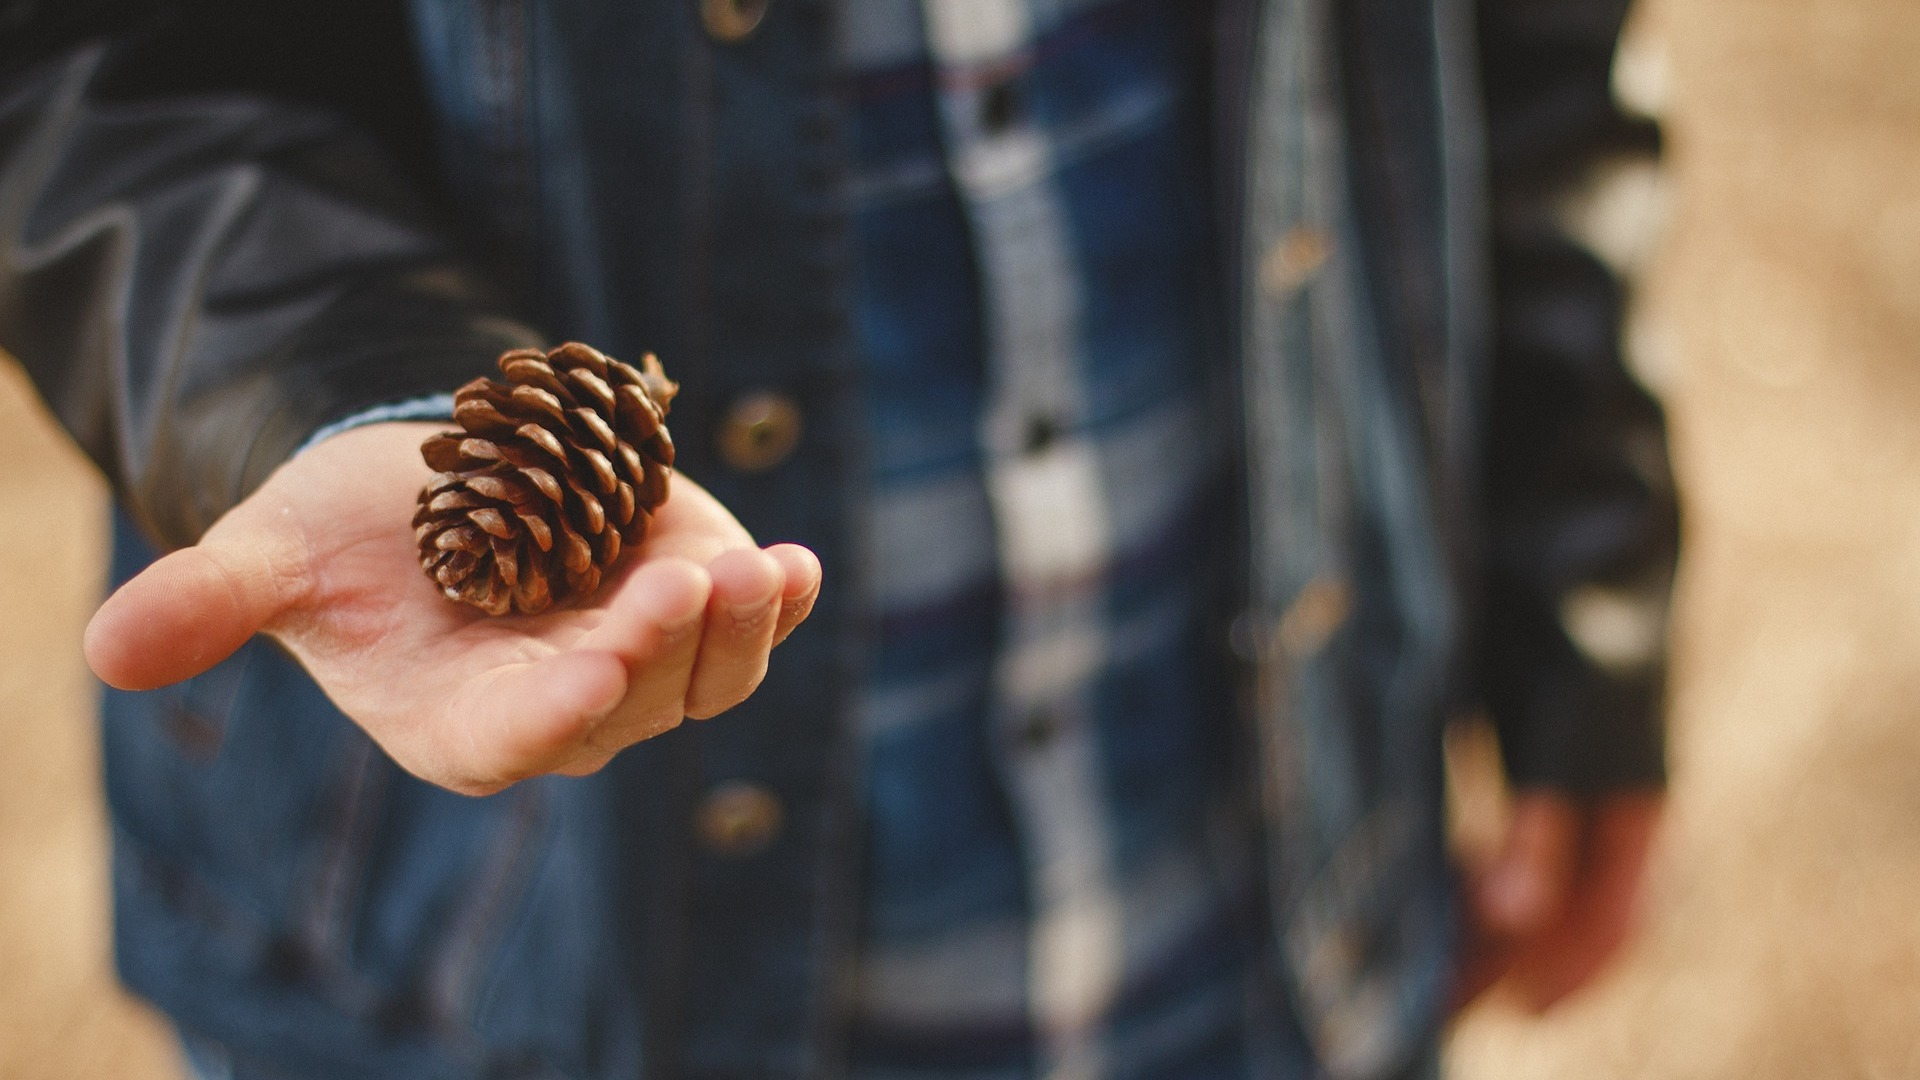 pinecone in hand